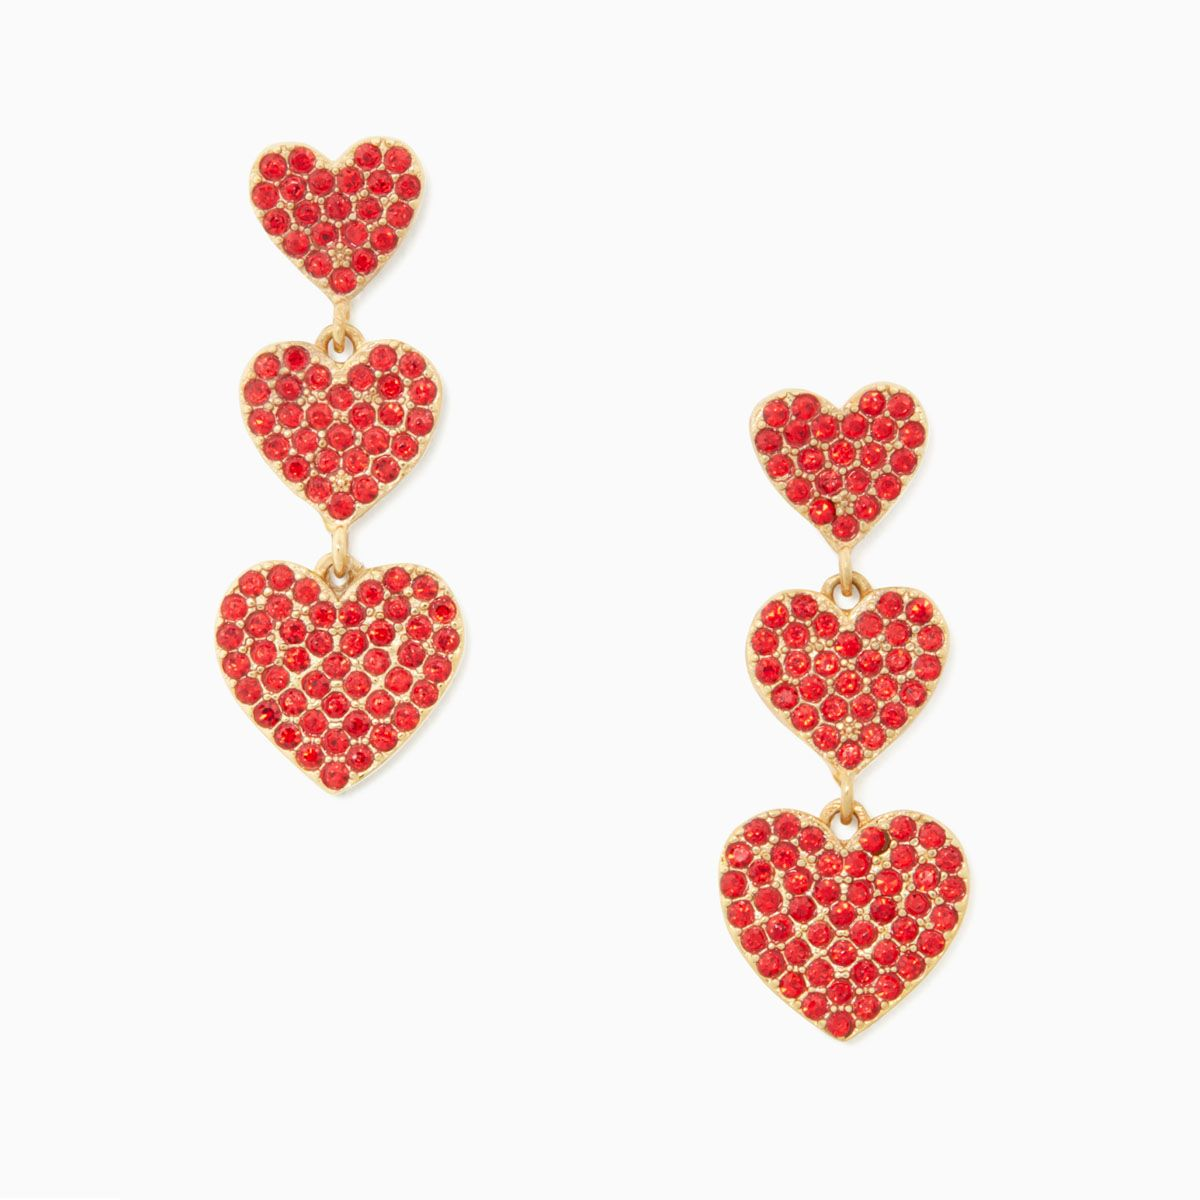 best-heart-earrings-270025-1539350959228-product.1200x0c.jpg (1200×1200)